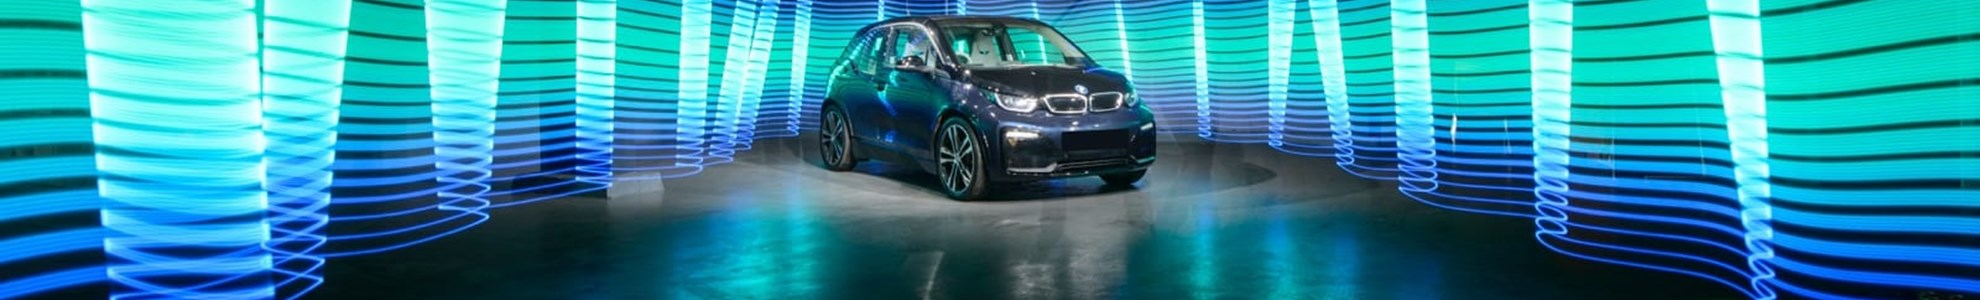 hybrid electric car surrounded by blue and green light